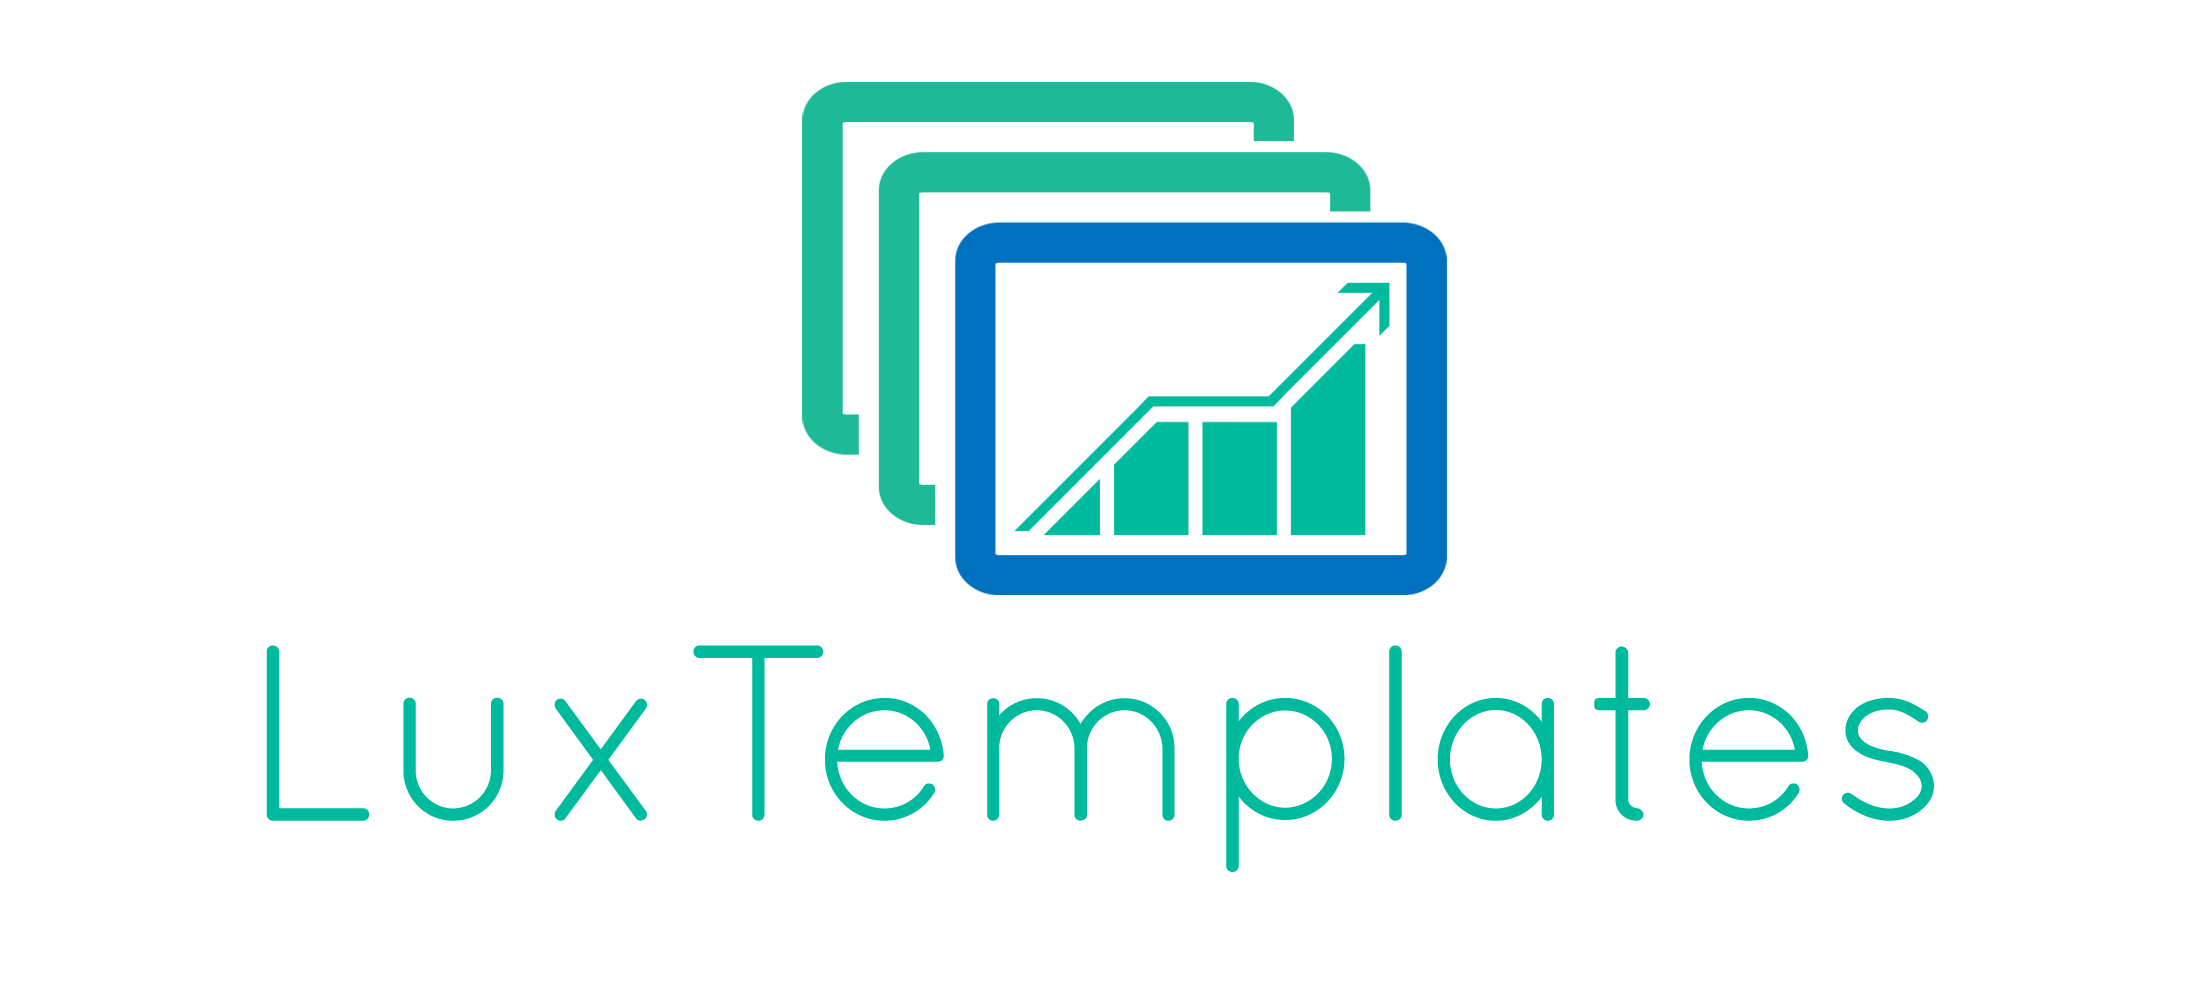 Templates logo Excel Spreadsheet Dashboard